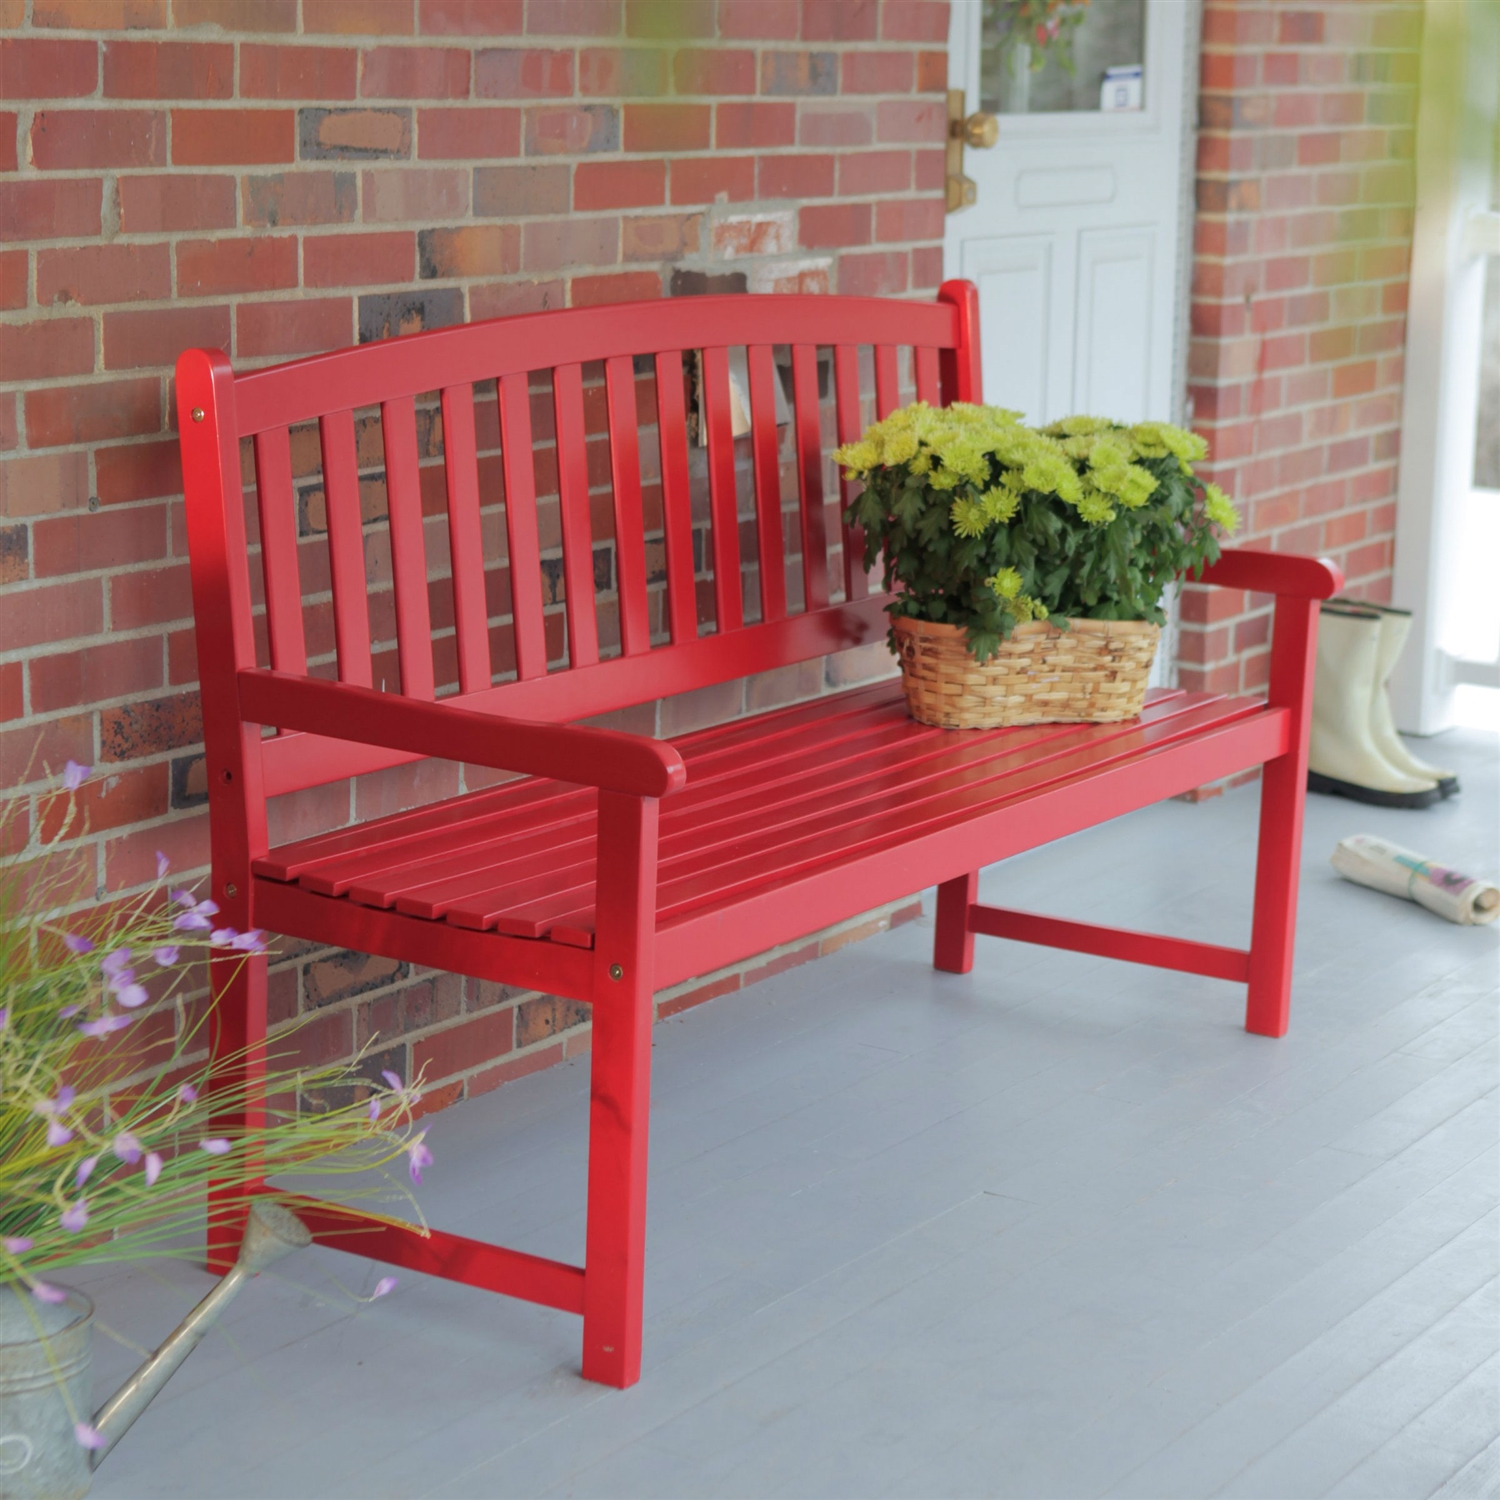 Astonishing 5 Ft Outdoor Garden Bench In Red Wood Finish With Armrest Ncnpc Chair Design For Home Ncnpcorg